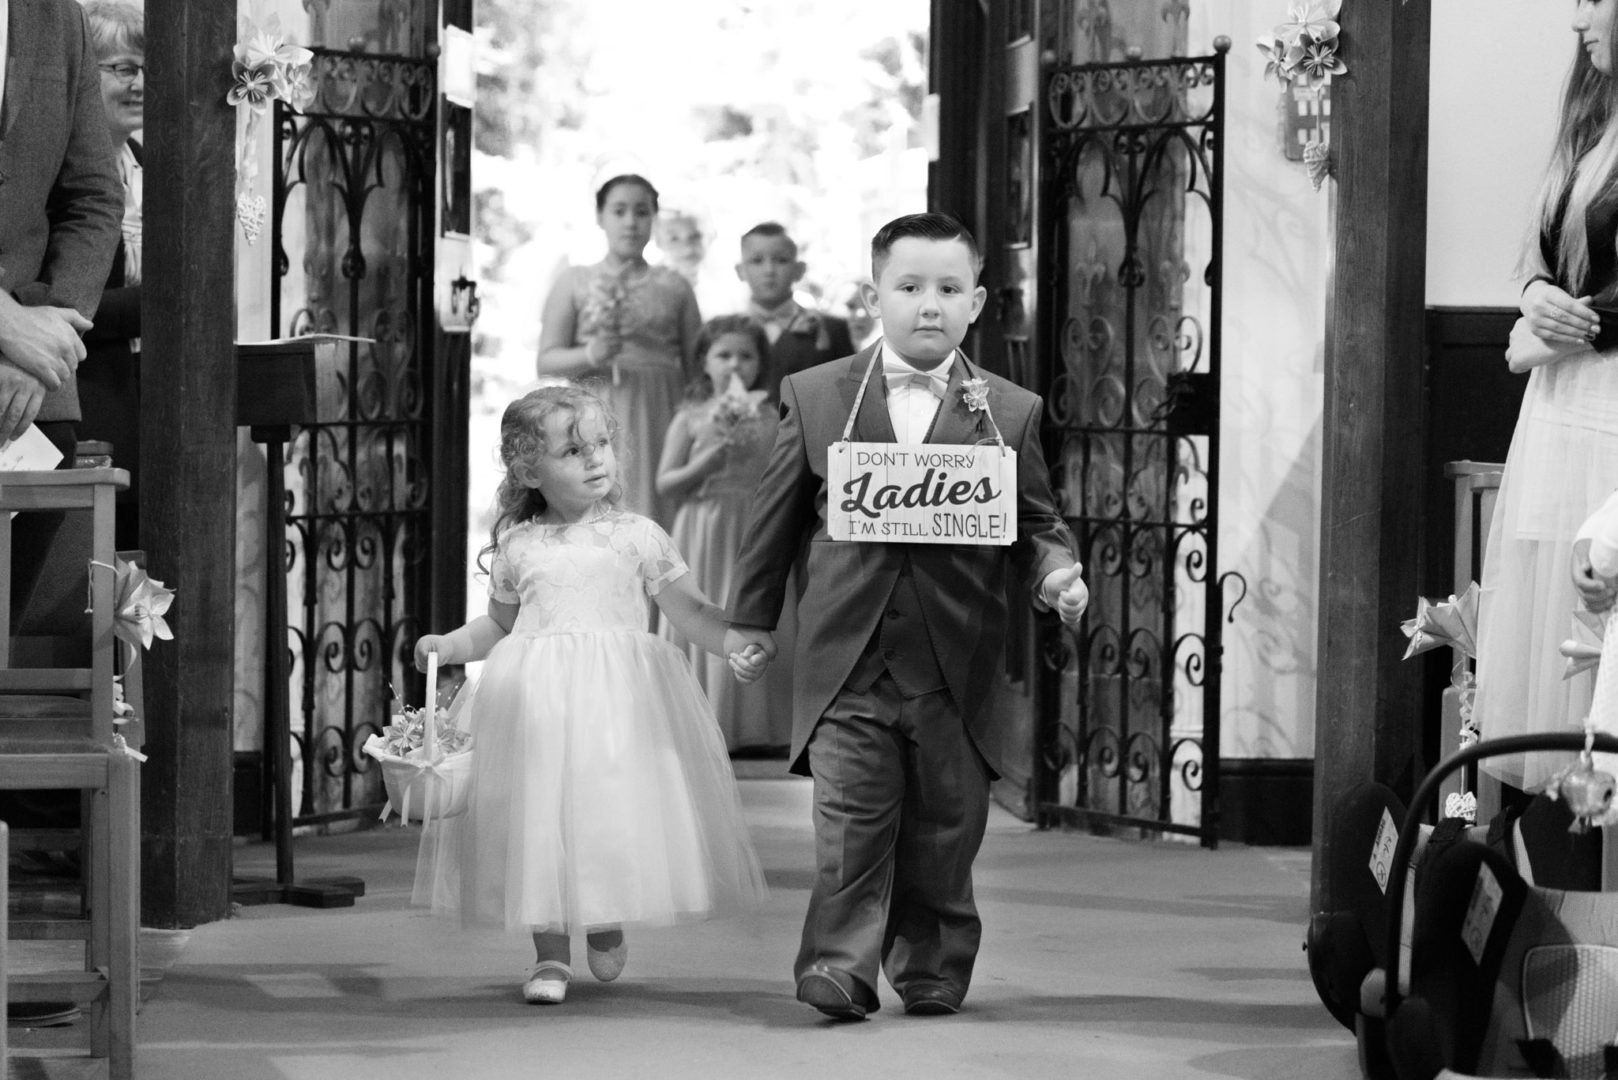 Warwickshire Wedding Photographer AJTImages at Elmdon Church